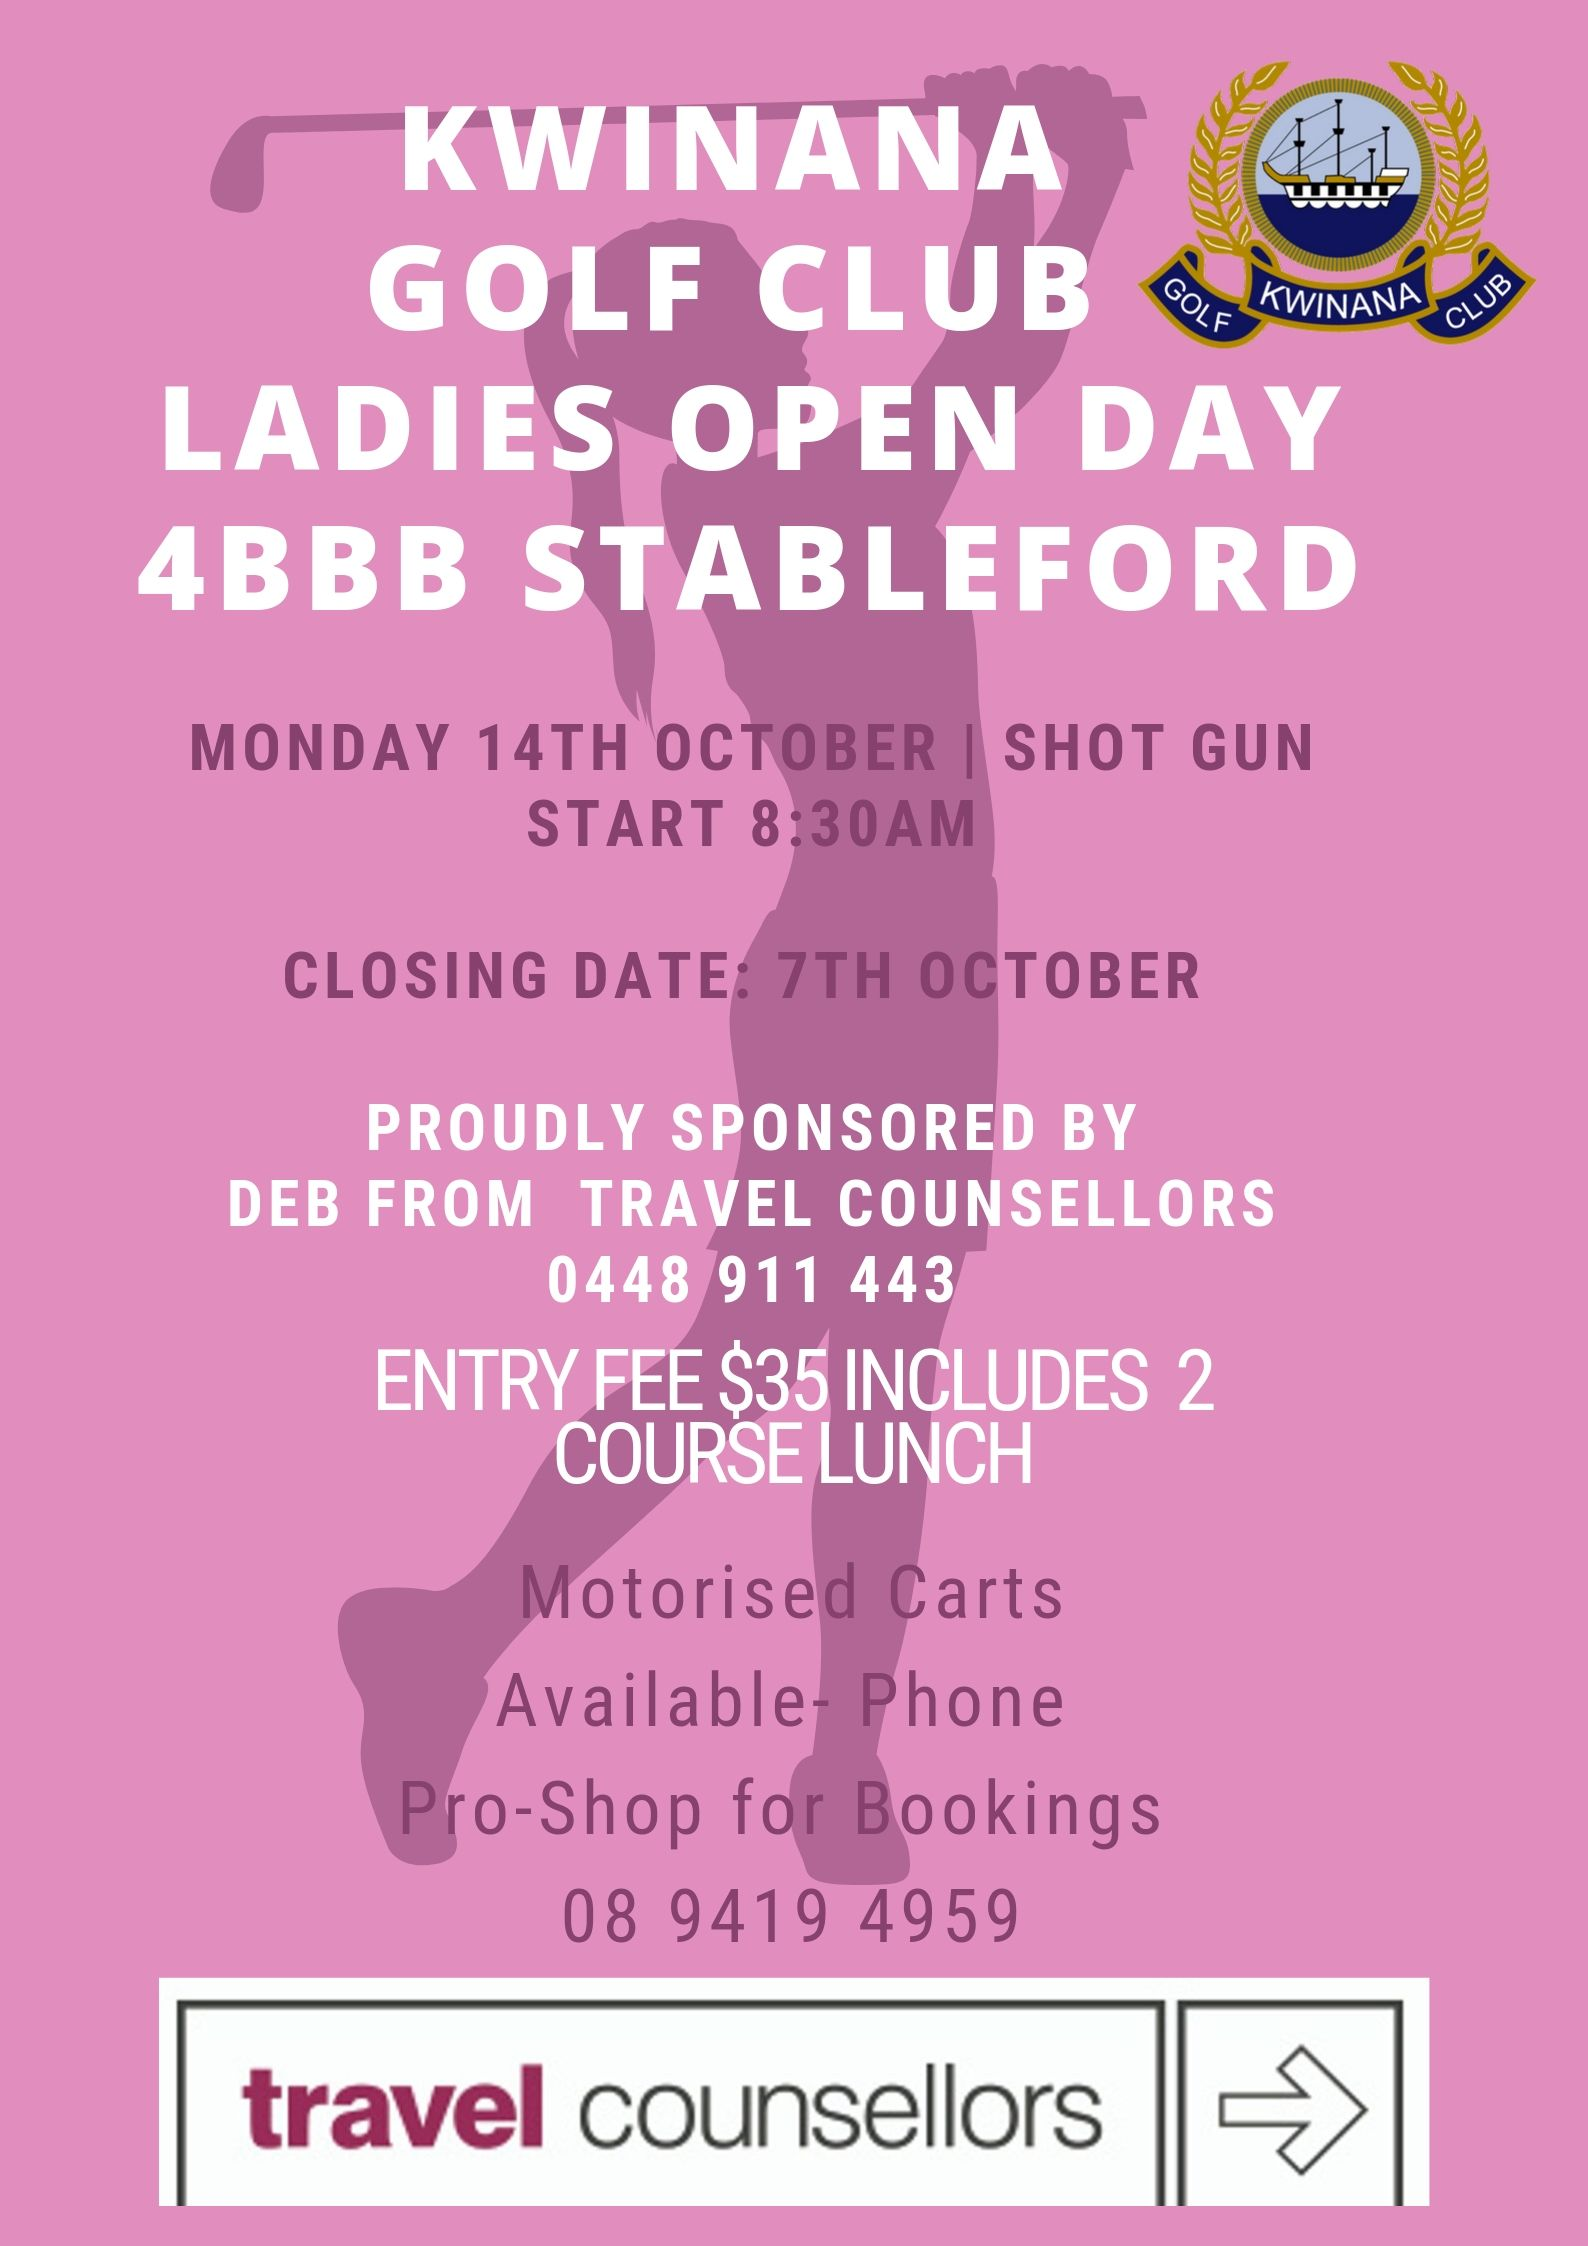 KGC Ladies Open Day Draw – Monday 14 October 2019-Sponsored by Deb Dewe from Travel Counsellors